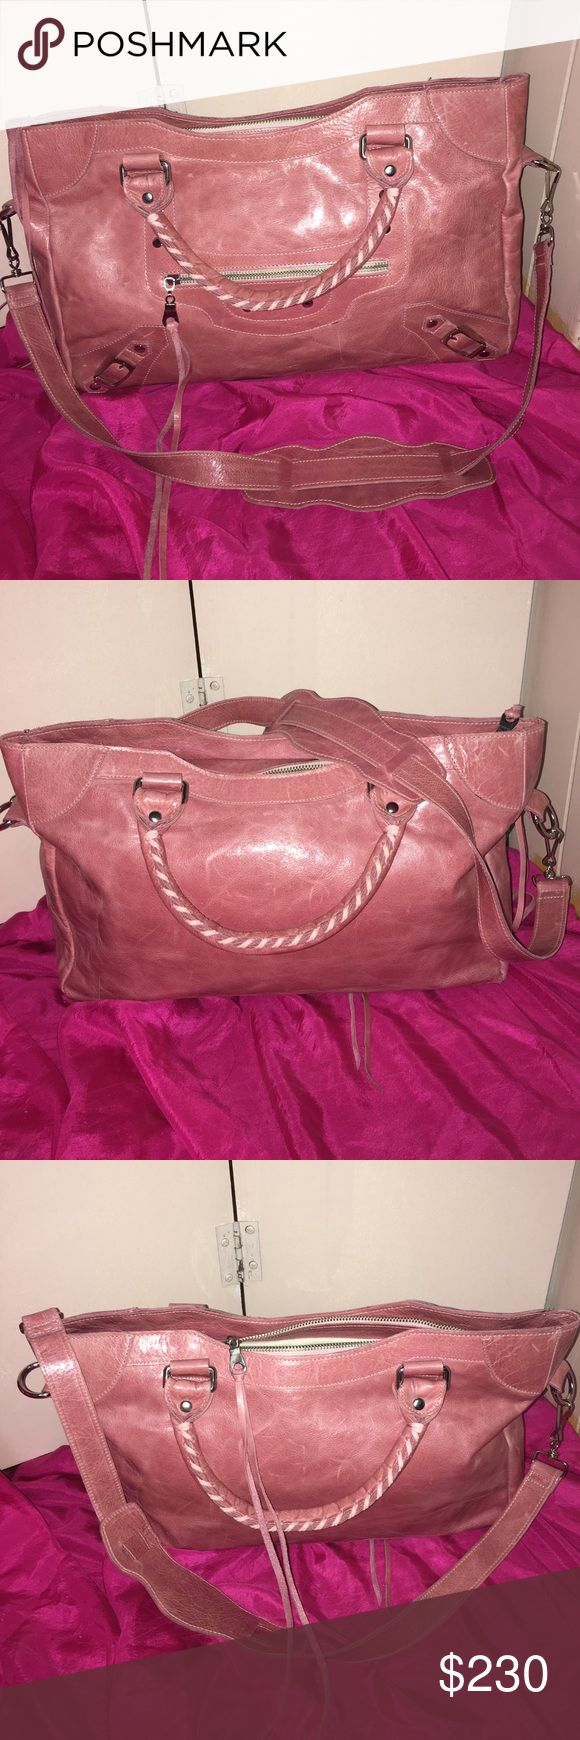 """NWOT Tammi Lyn pink leather saddle bag NWOT Tammi Lyn pink leather saddle bag. Spacious beautiful bag, made of 100% Italian leather with suede leather lining. Brand new never worn. This bad is made by designer Tammi Lyn and is reminiscent of the Famous  Balenciaga city bag. This pink leather designer bag is a must have for the spring. Measurements are approximately 9""""H and 12"""" W. Bag drop is 12"""" Tammi Lyn Bags Satchels"""